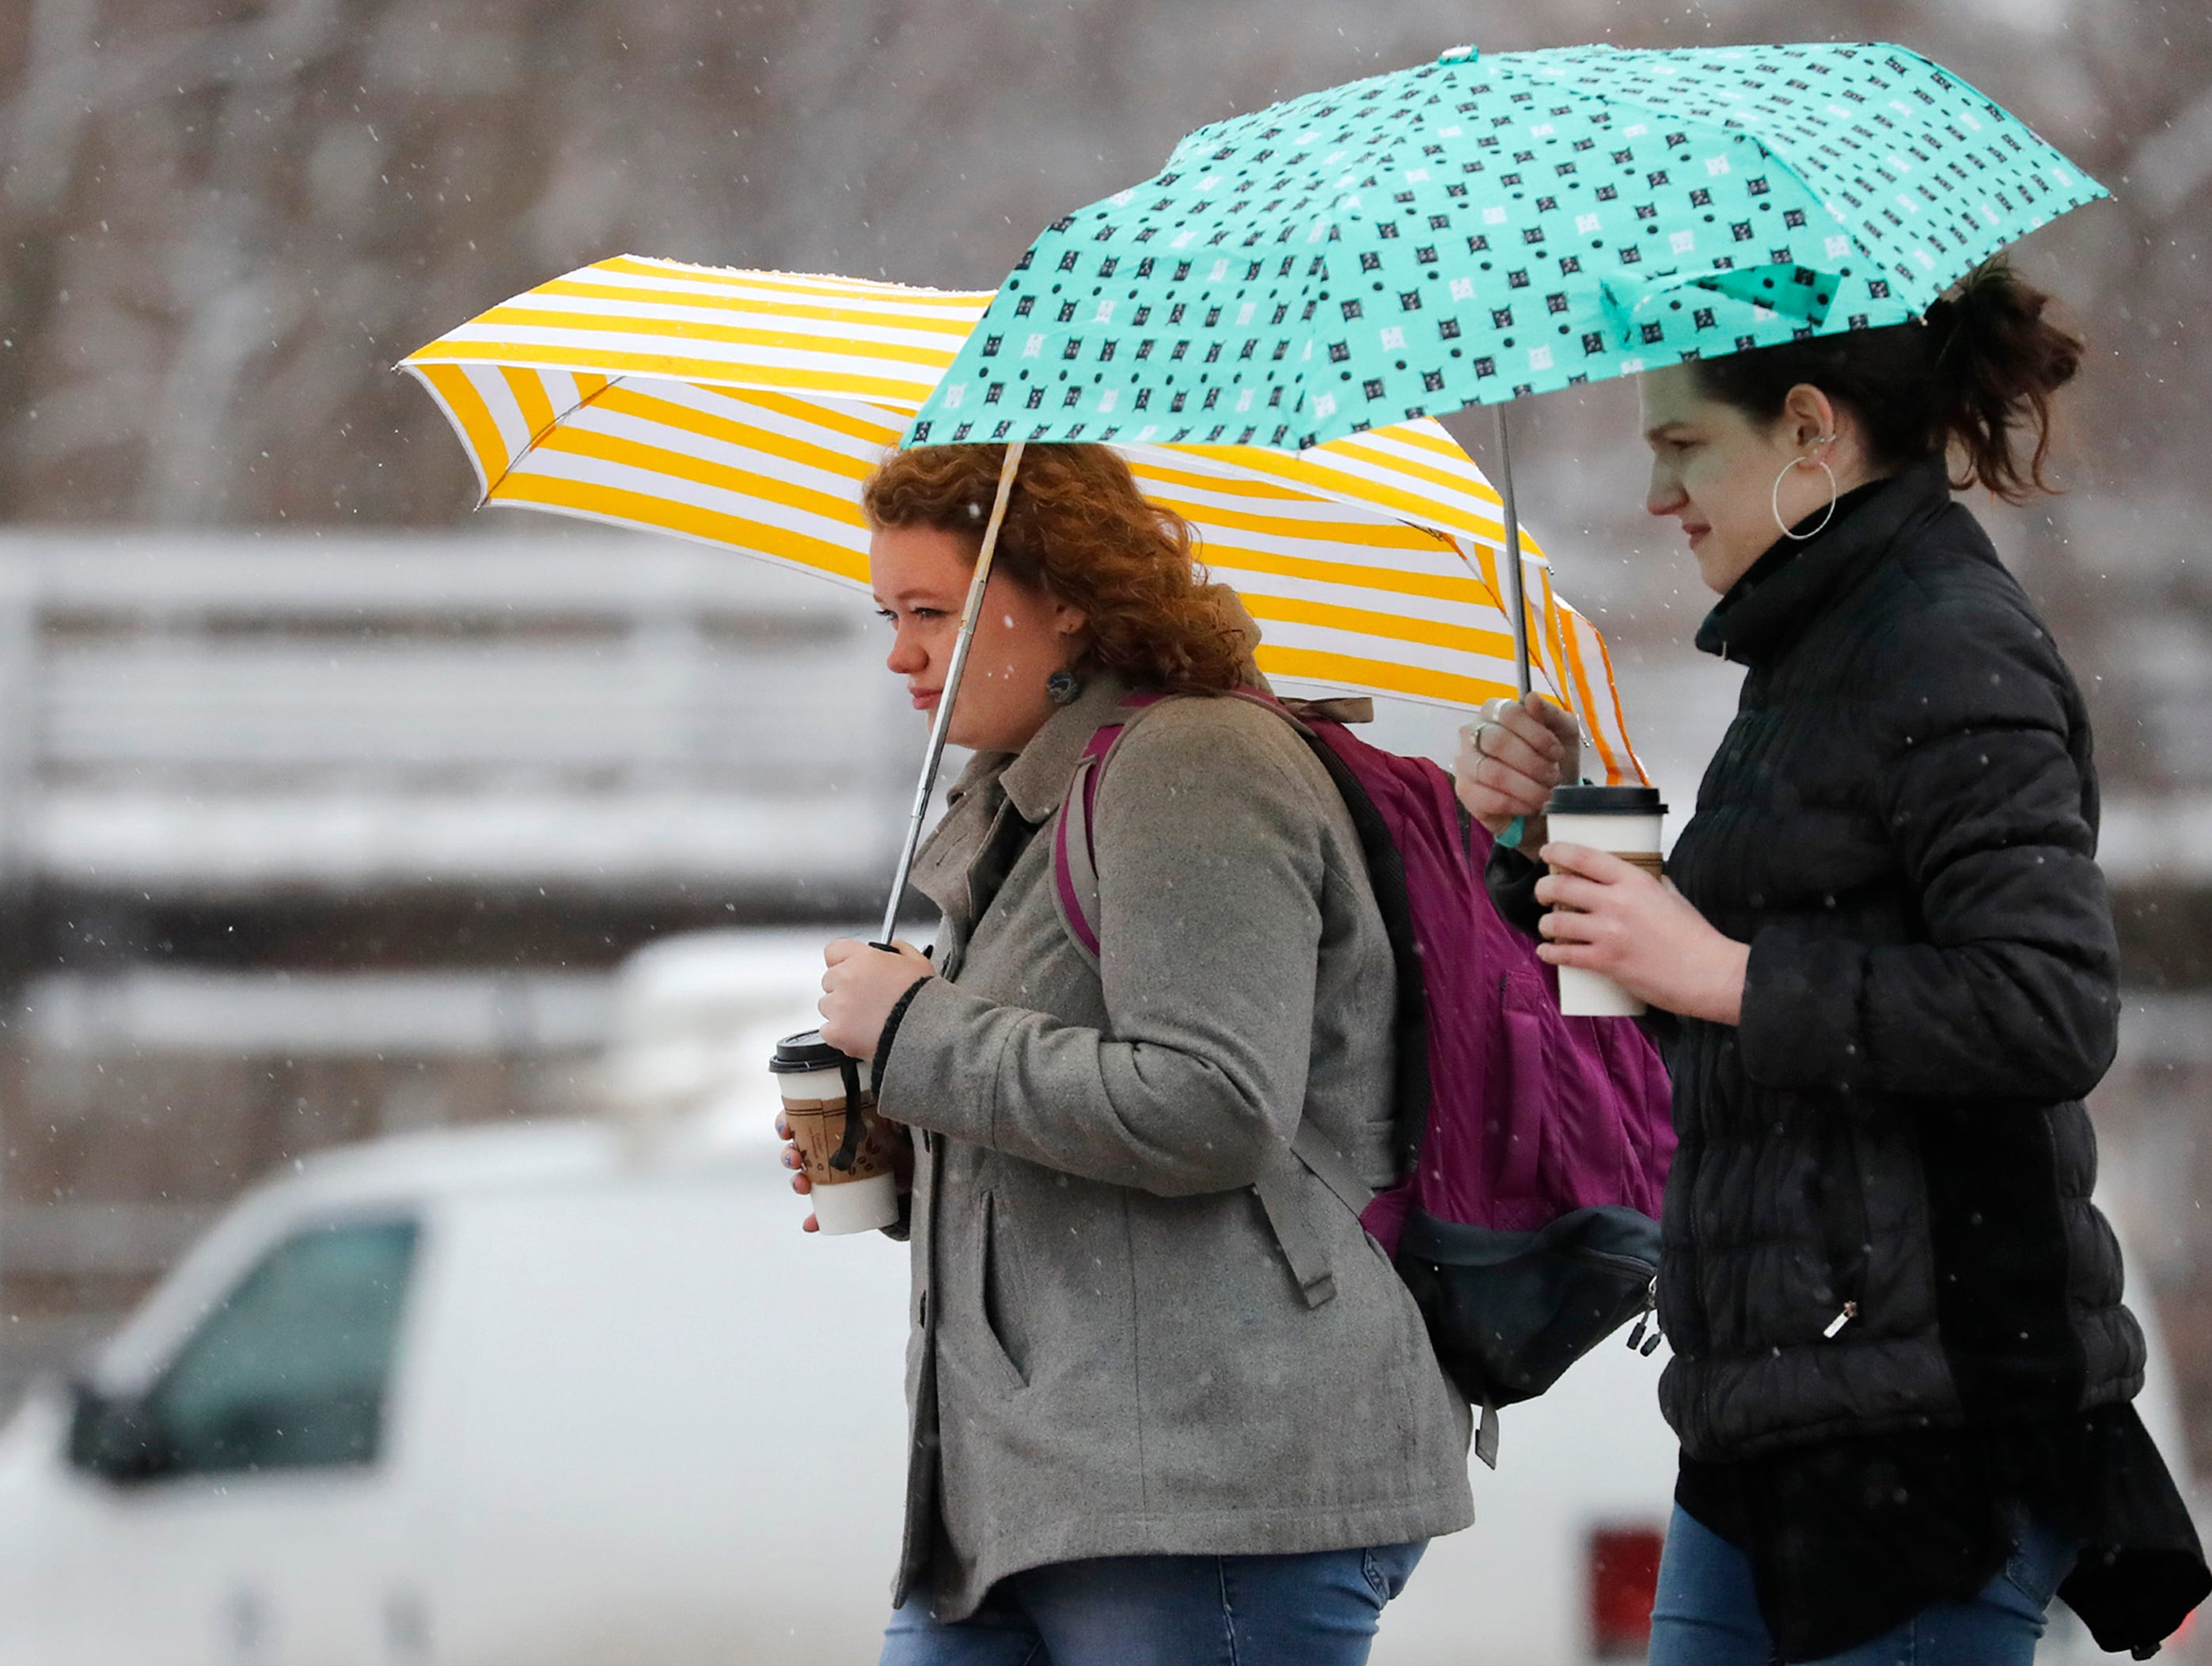 Emma Milton and Melanie Aiken, students at Lawrence University, walk back to campus through freezing rain after picking up coffee Thursday, April 11, 2019, in Appleton, Wis. Danny Damiani/USA TODAY NETWORK-Wisconsin